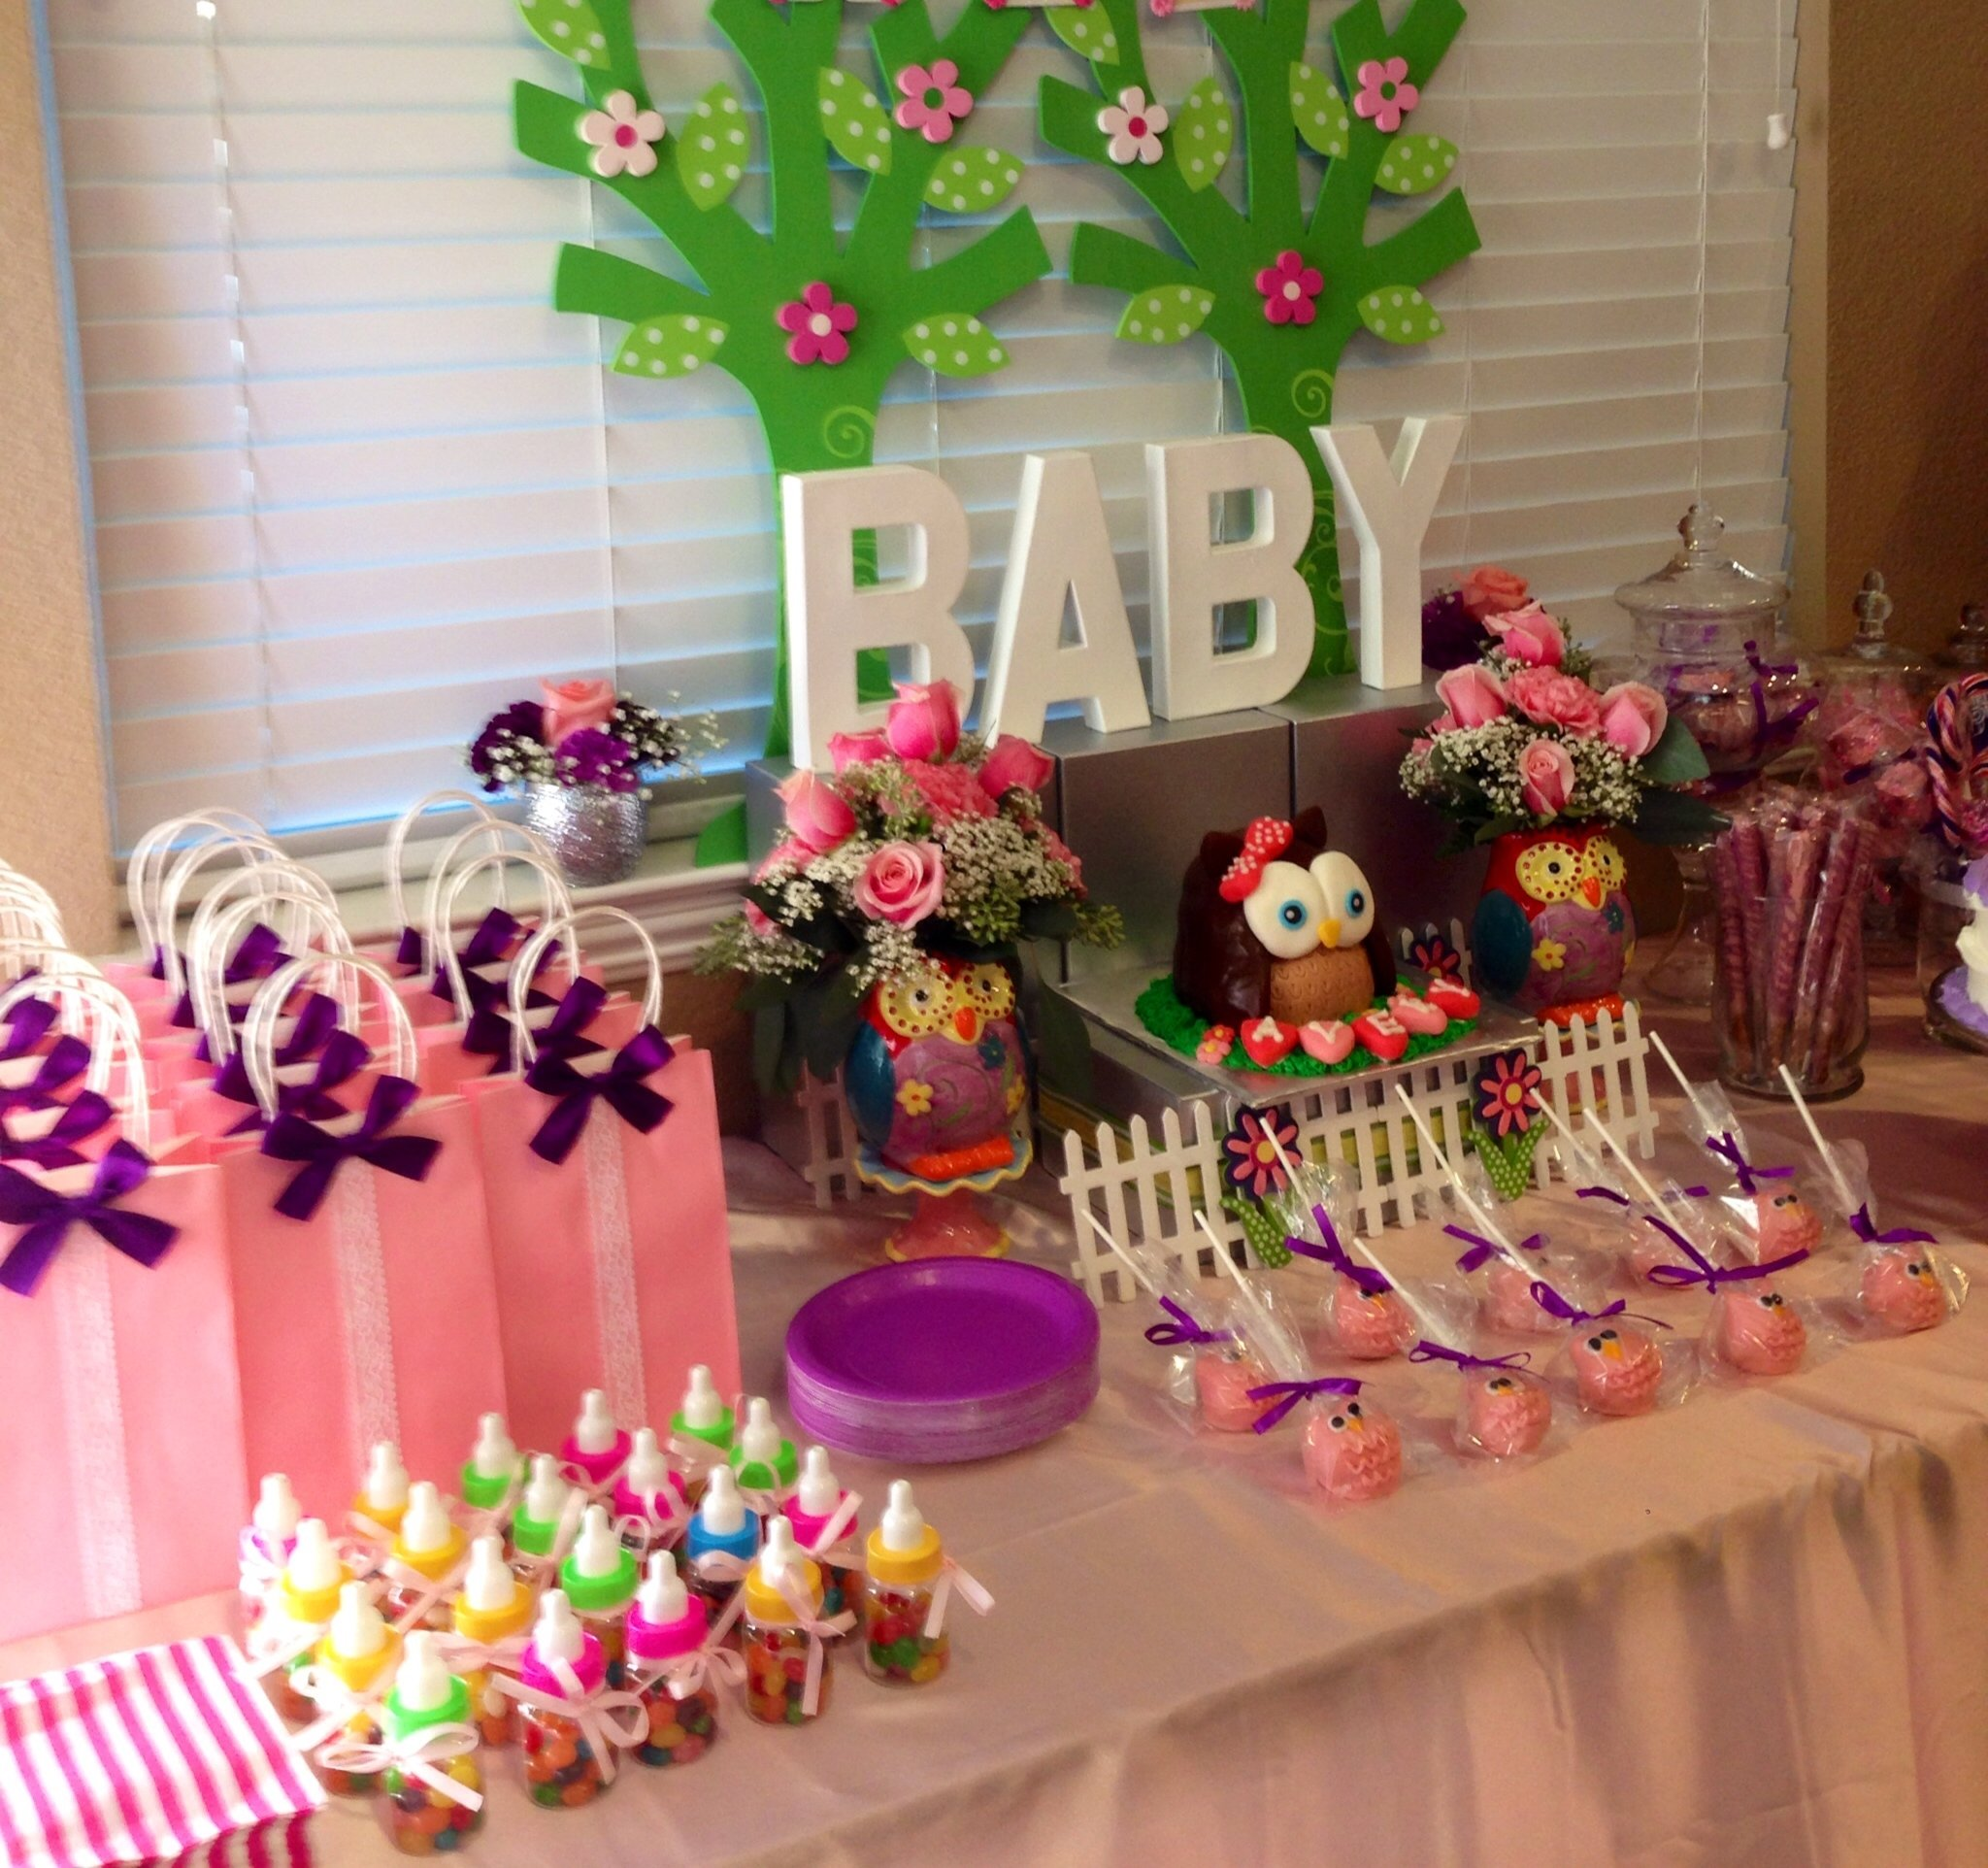 10 Elegant Baby Shower Candy Bar Ideas candy bars for baby shower favors e280a2 baby showers ideas 2021